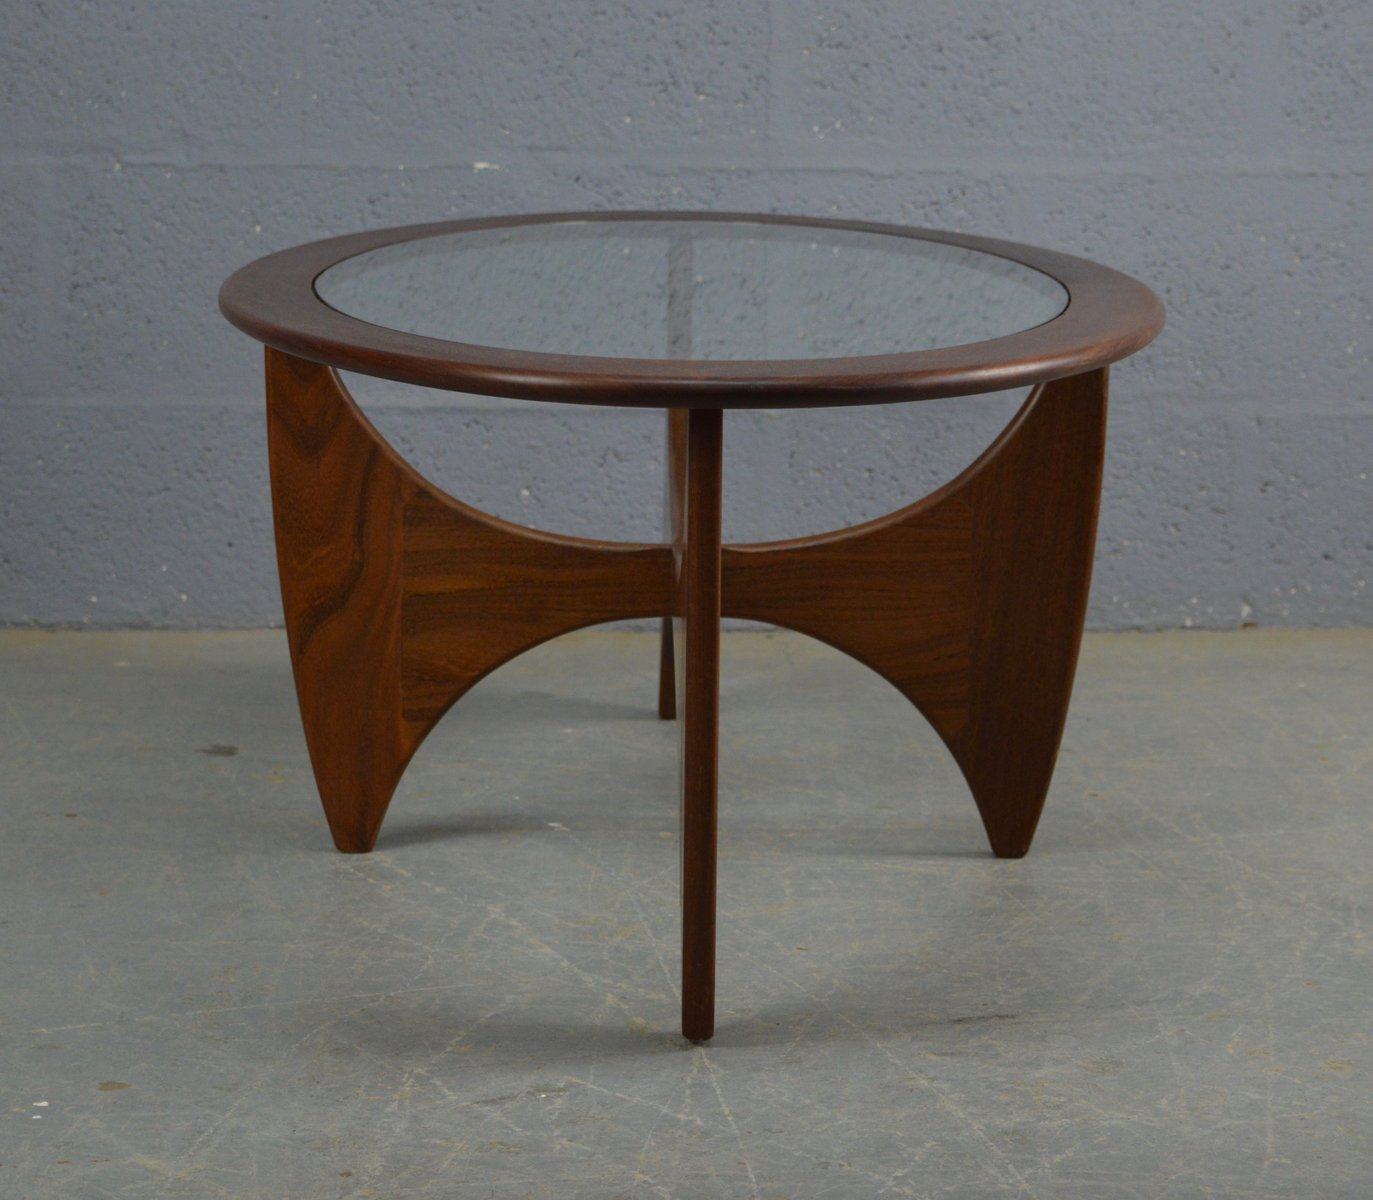 Oval Coffee Table Plans: Mid-Century Oval Teak Astro Coffee Table By Victor Wilkins